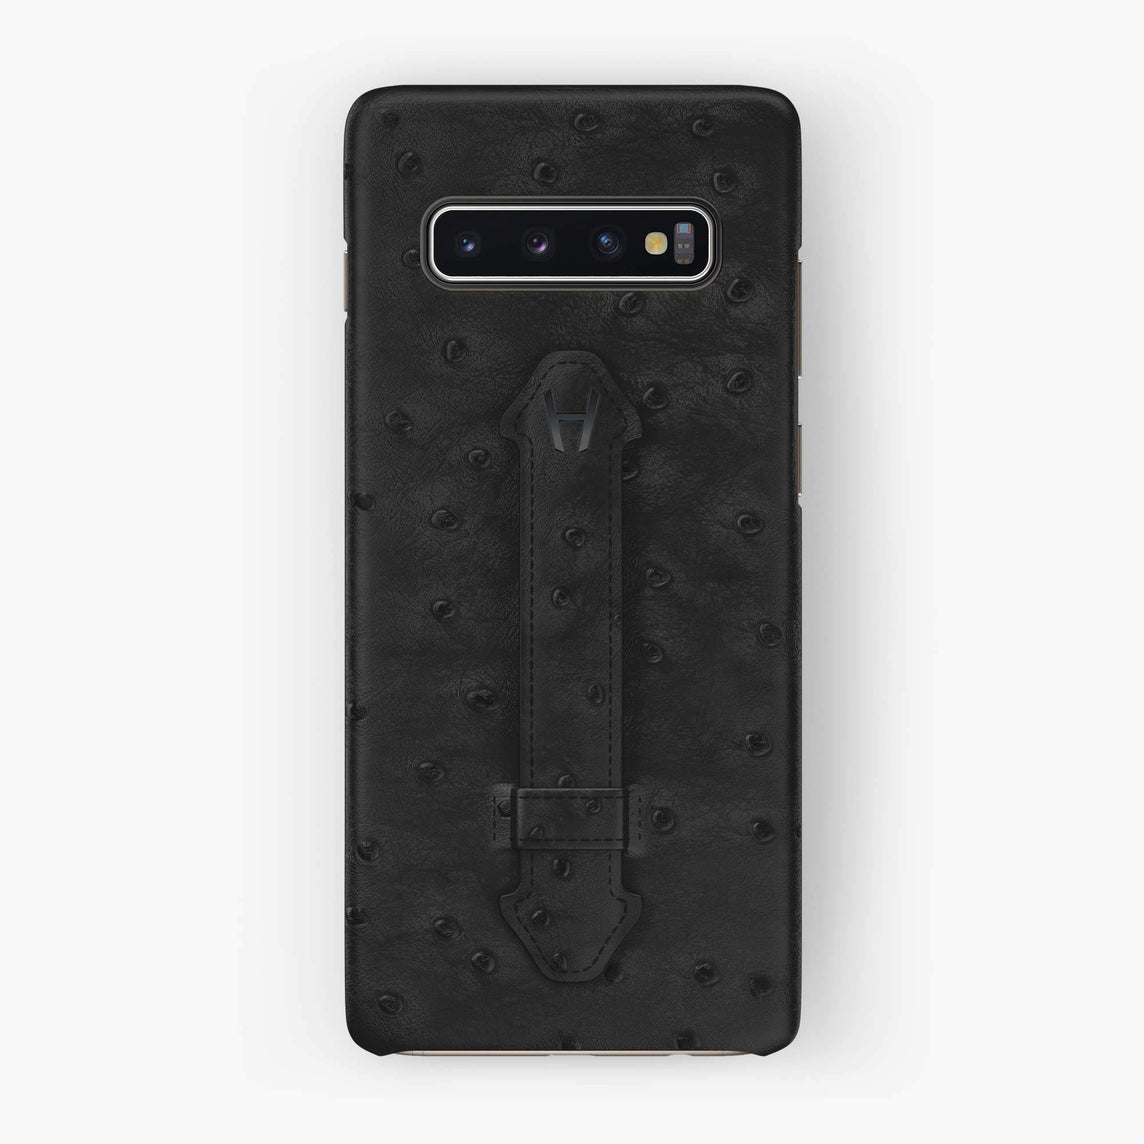 Ostrich Finger Case Samsung S10 Plus | Grey Anthracite - Black without-personalization